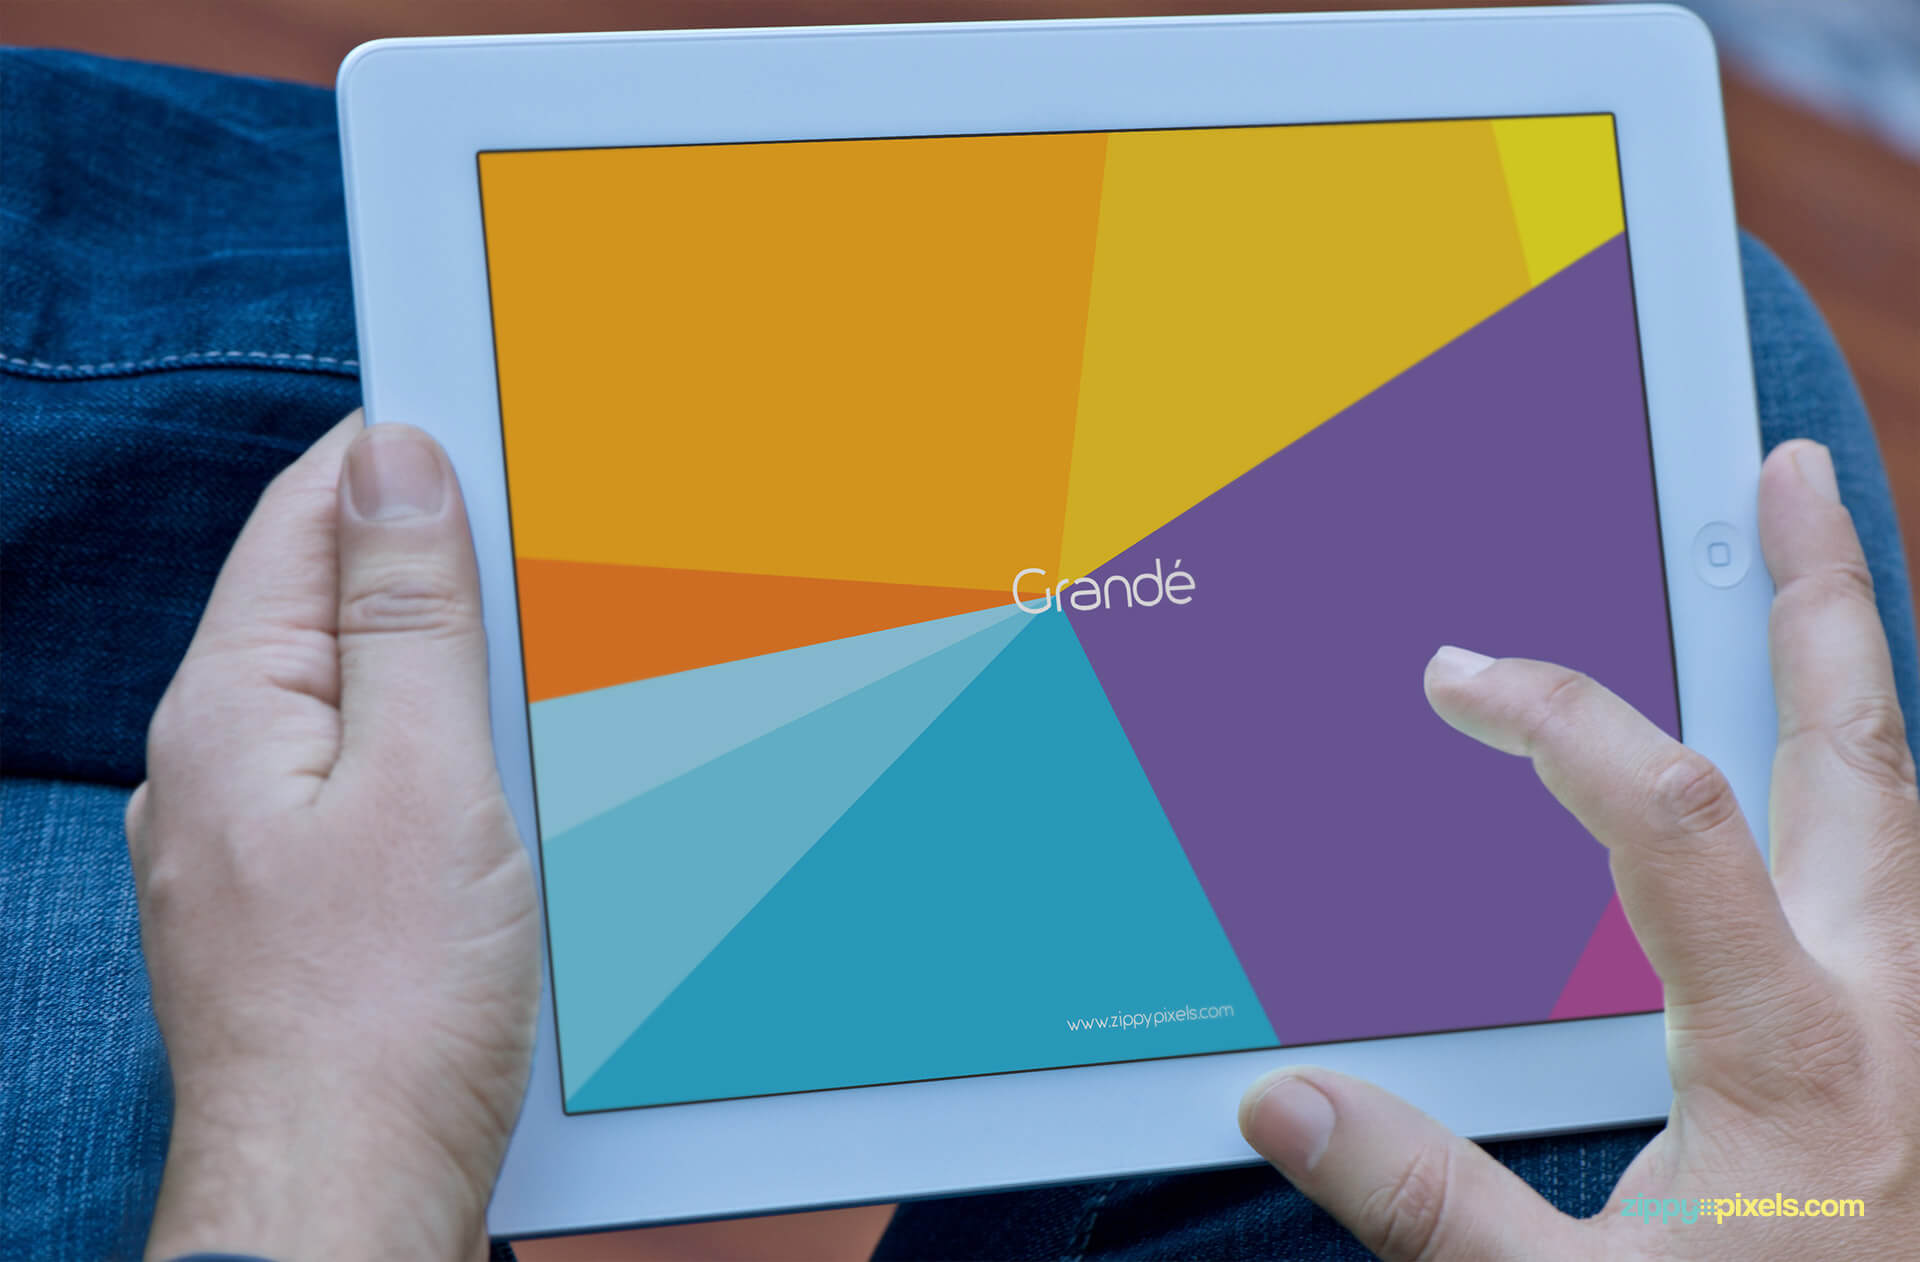 Mockup of Close up iPad used by a Hands